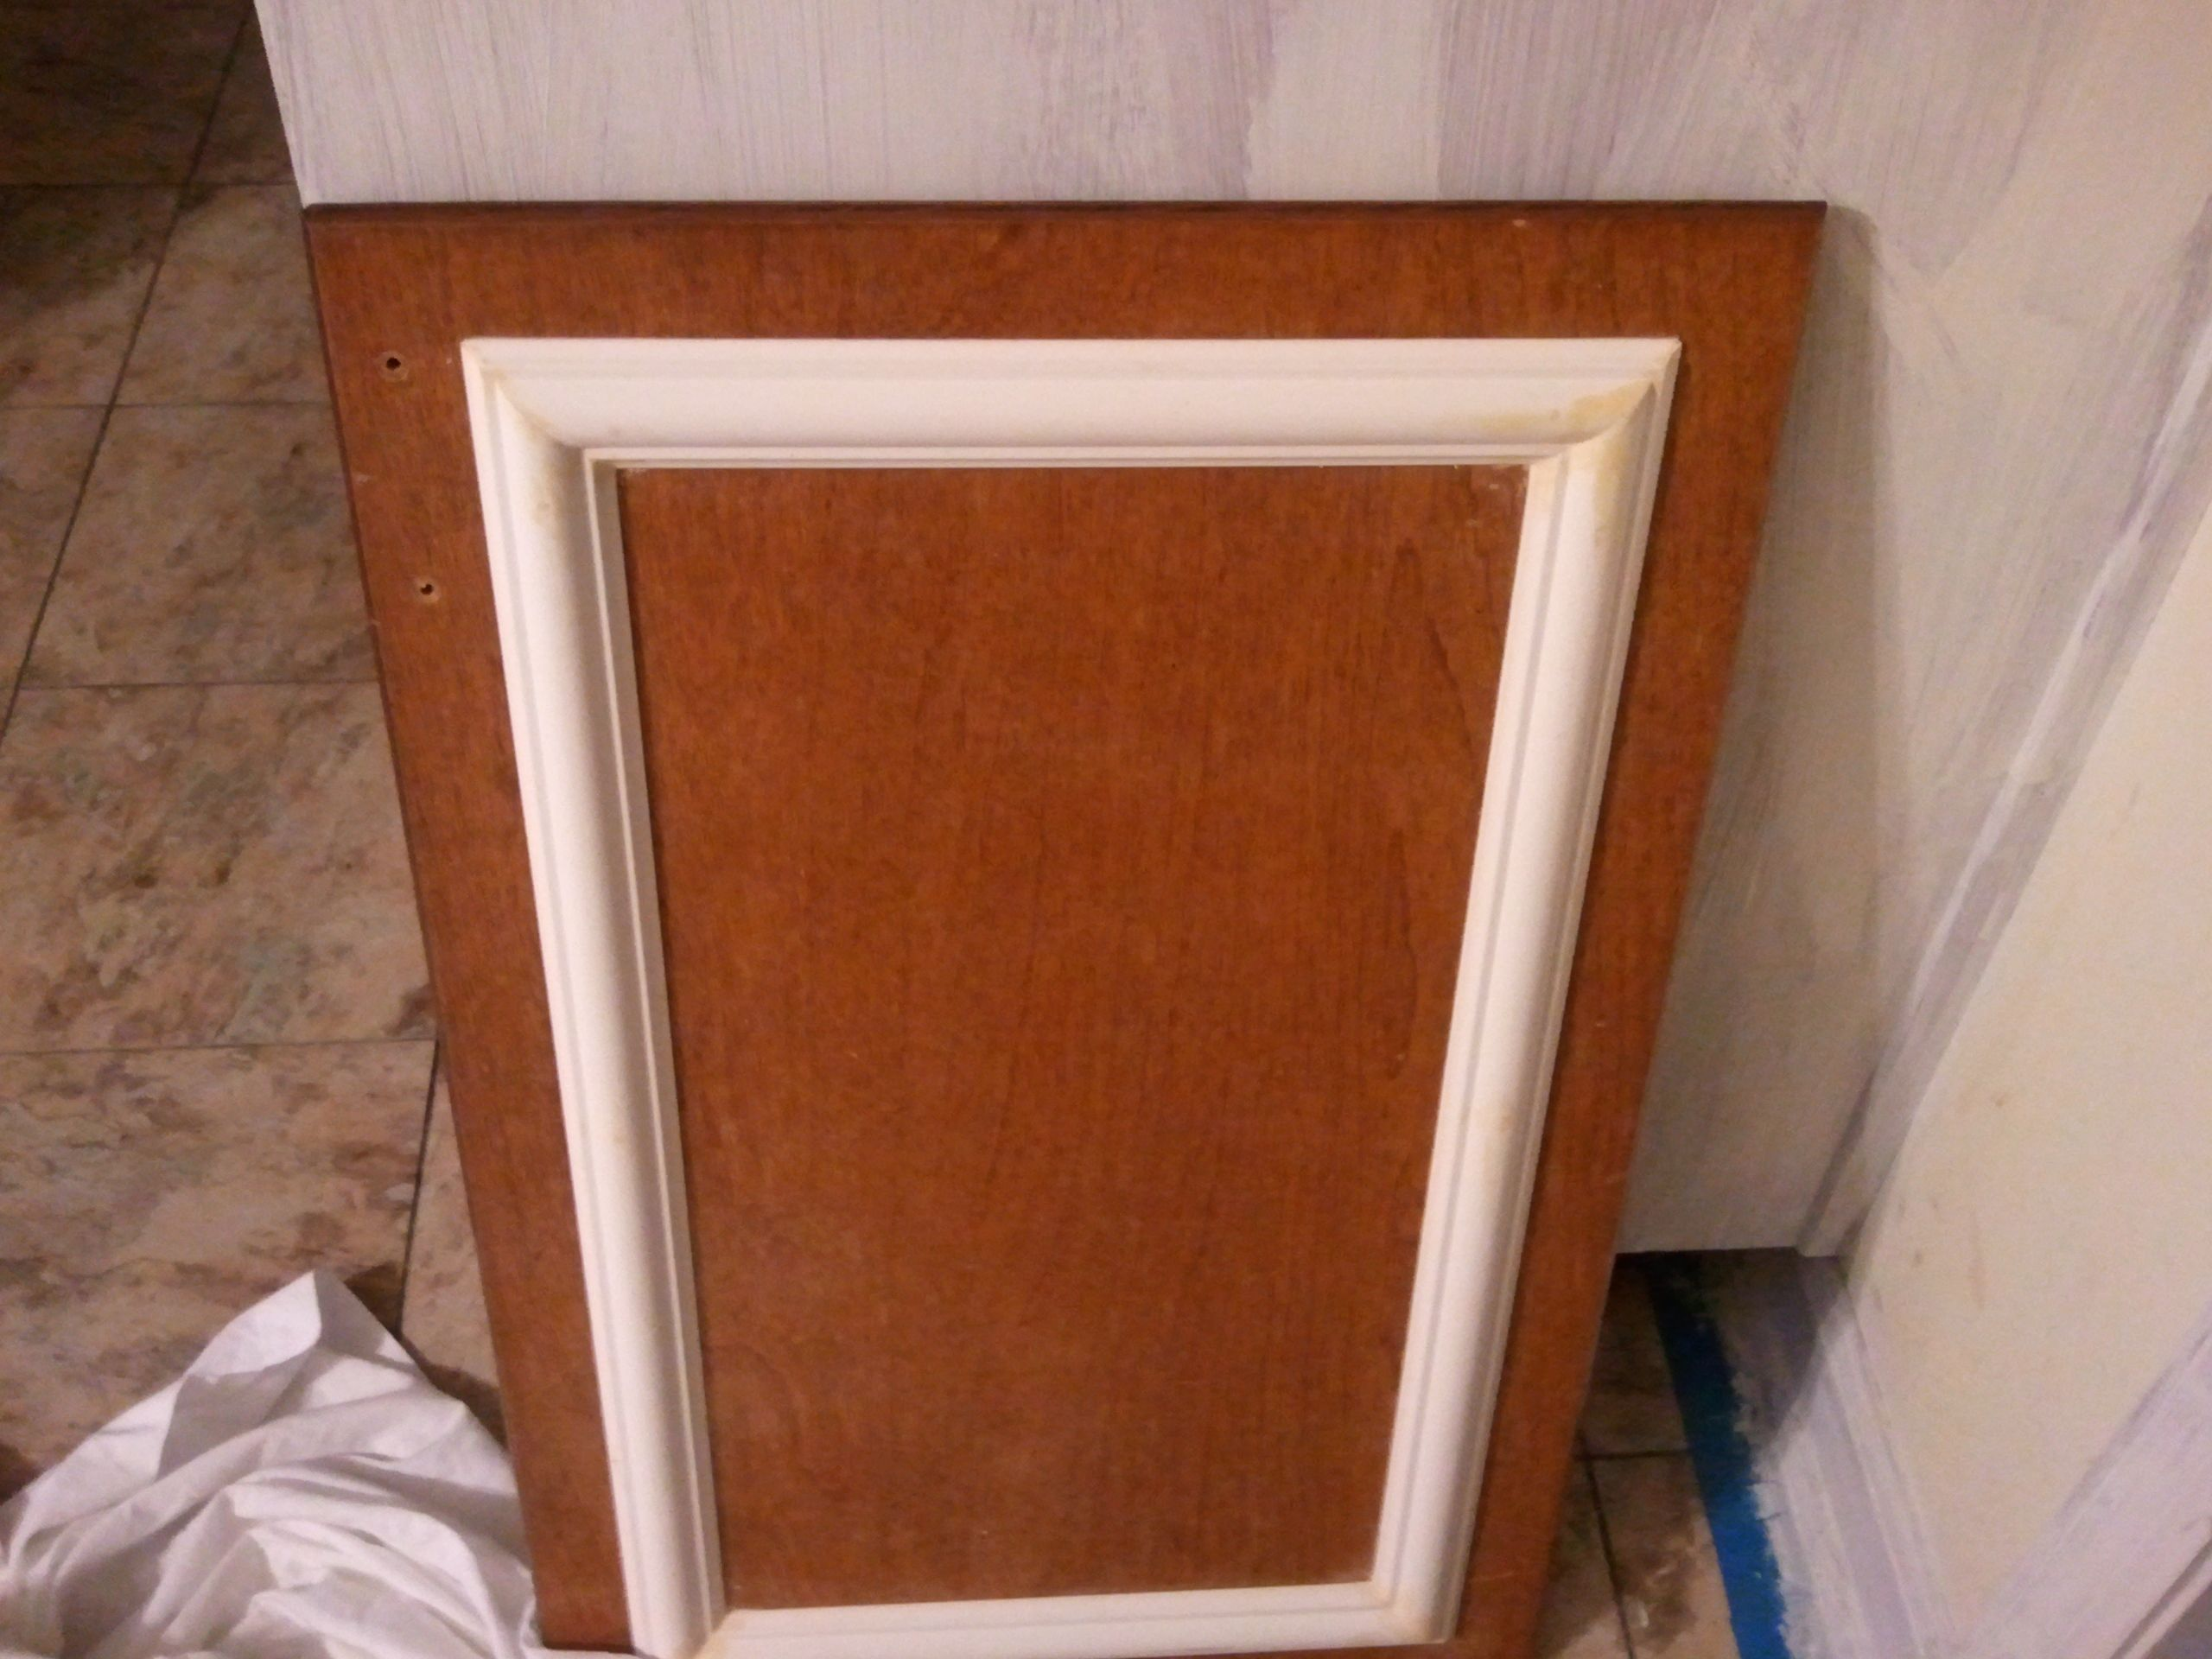 Wood Veneer Cabinet Doors Add Trim And A New Coat Of Paint To Old Cabinets For A Chic Update